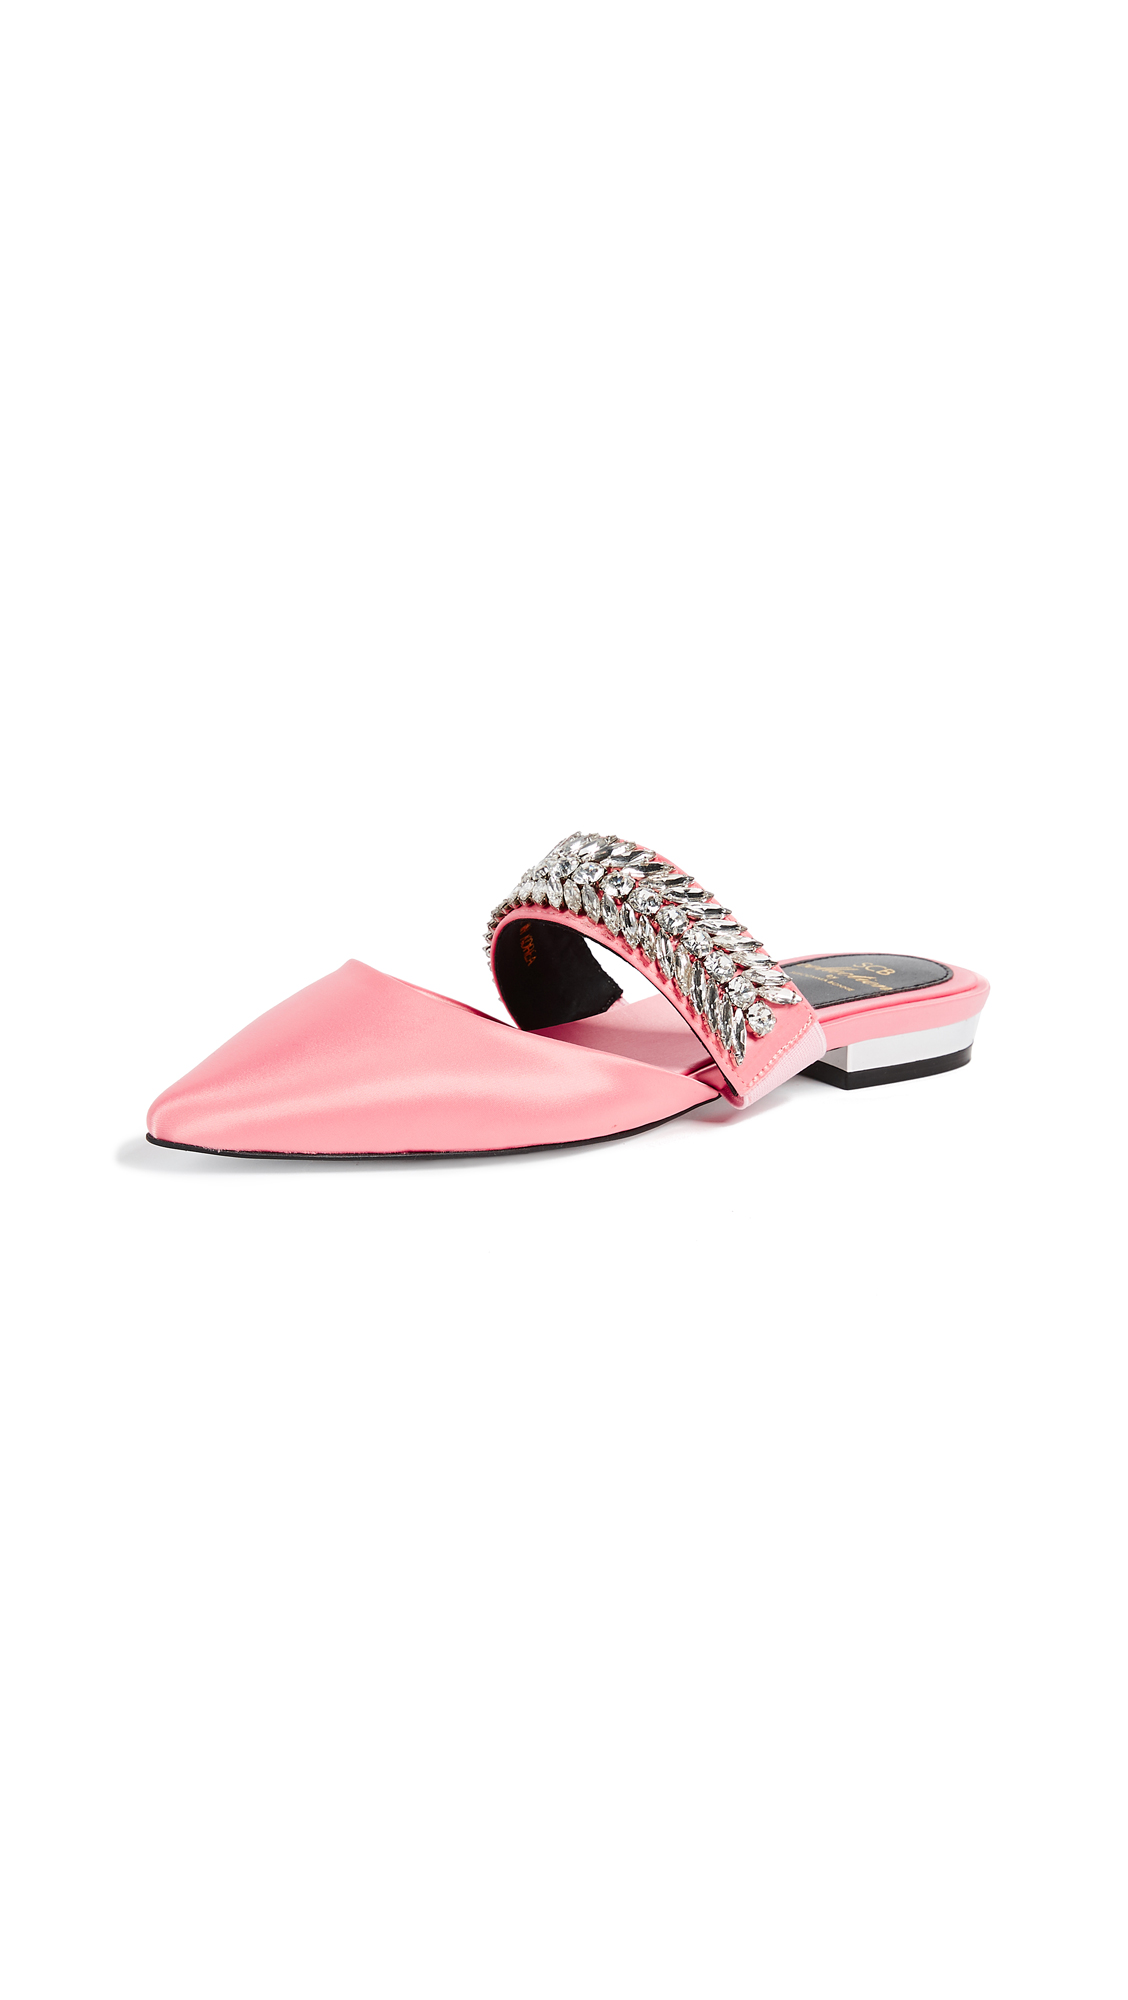 Suecomma Bonnie Embellished Strap Mules - Pink